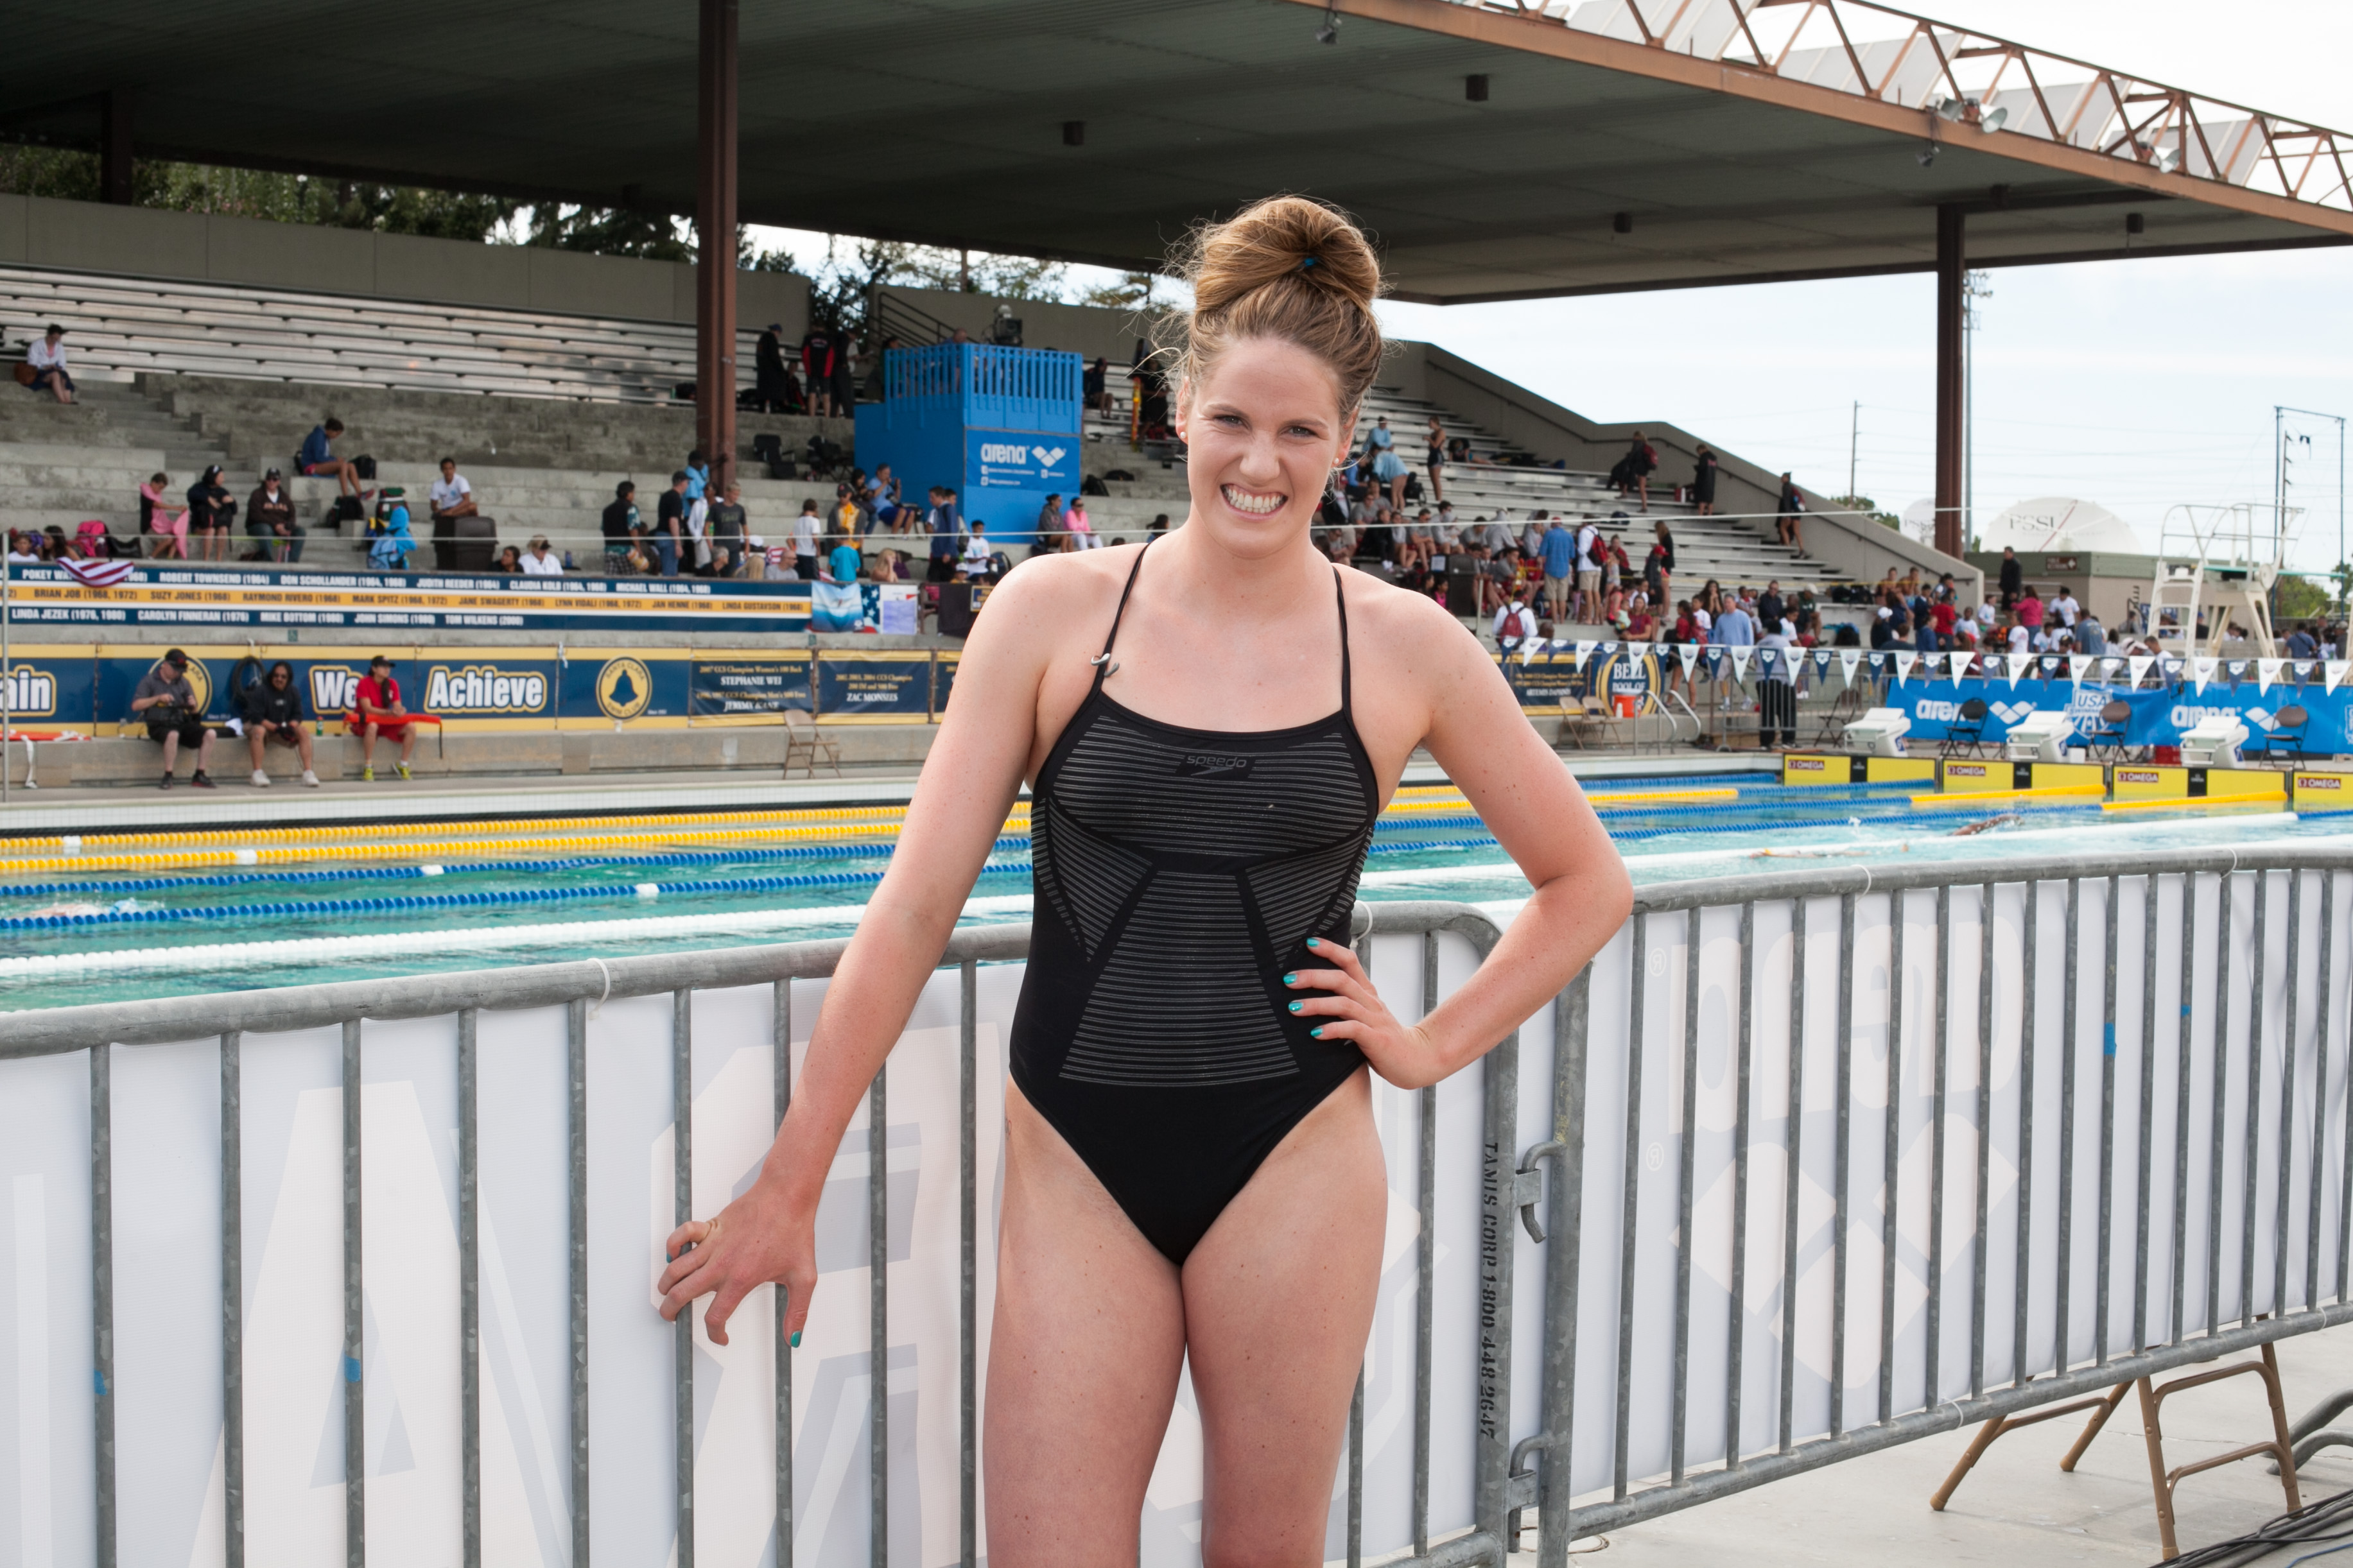 Missy Franklin poses for us - Swimming World News: https://www.swimmingworldmagazine.com/news/missy-franklin-poses-for-us